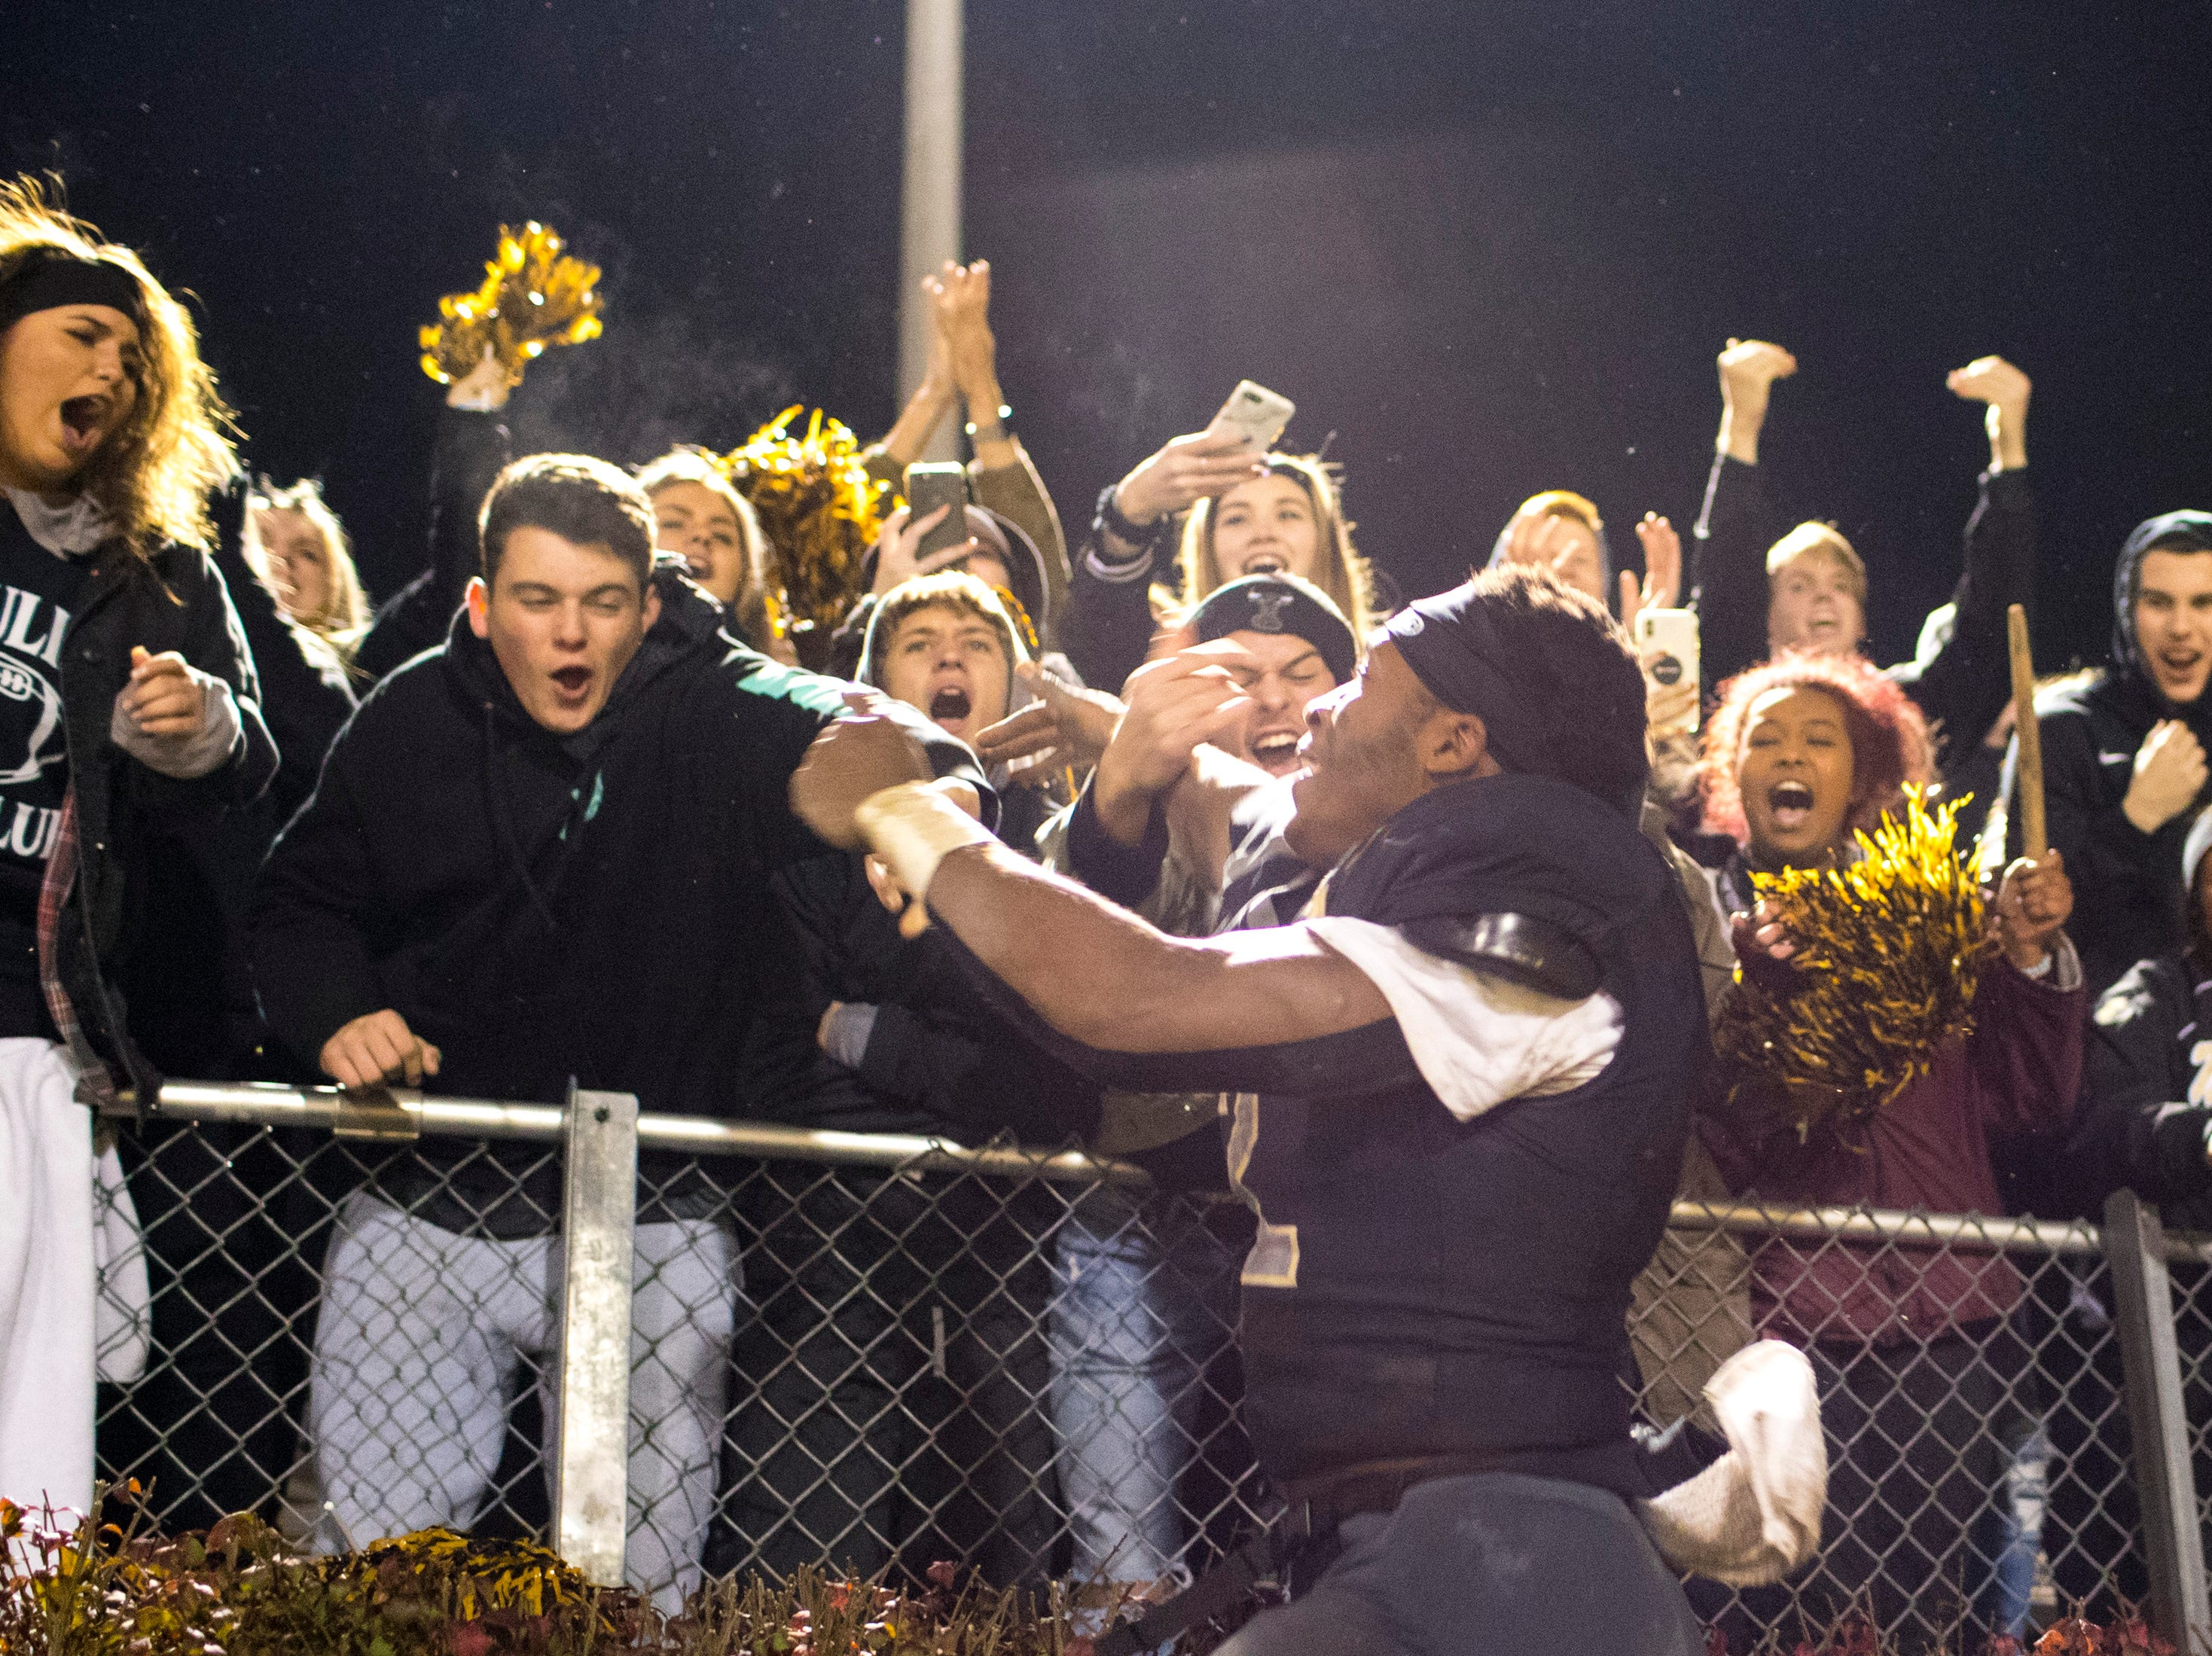 Mt. Juliet's Marcello Walton (2) jumps up to the student section after Mt. Juliet's game against Blackman at Mt. Juliet High School in Mt. Juliet on Friday, Nov. 9, 2018.